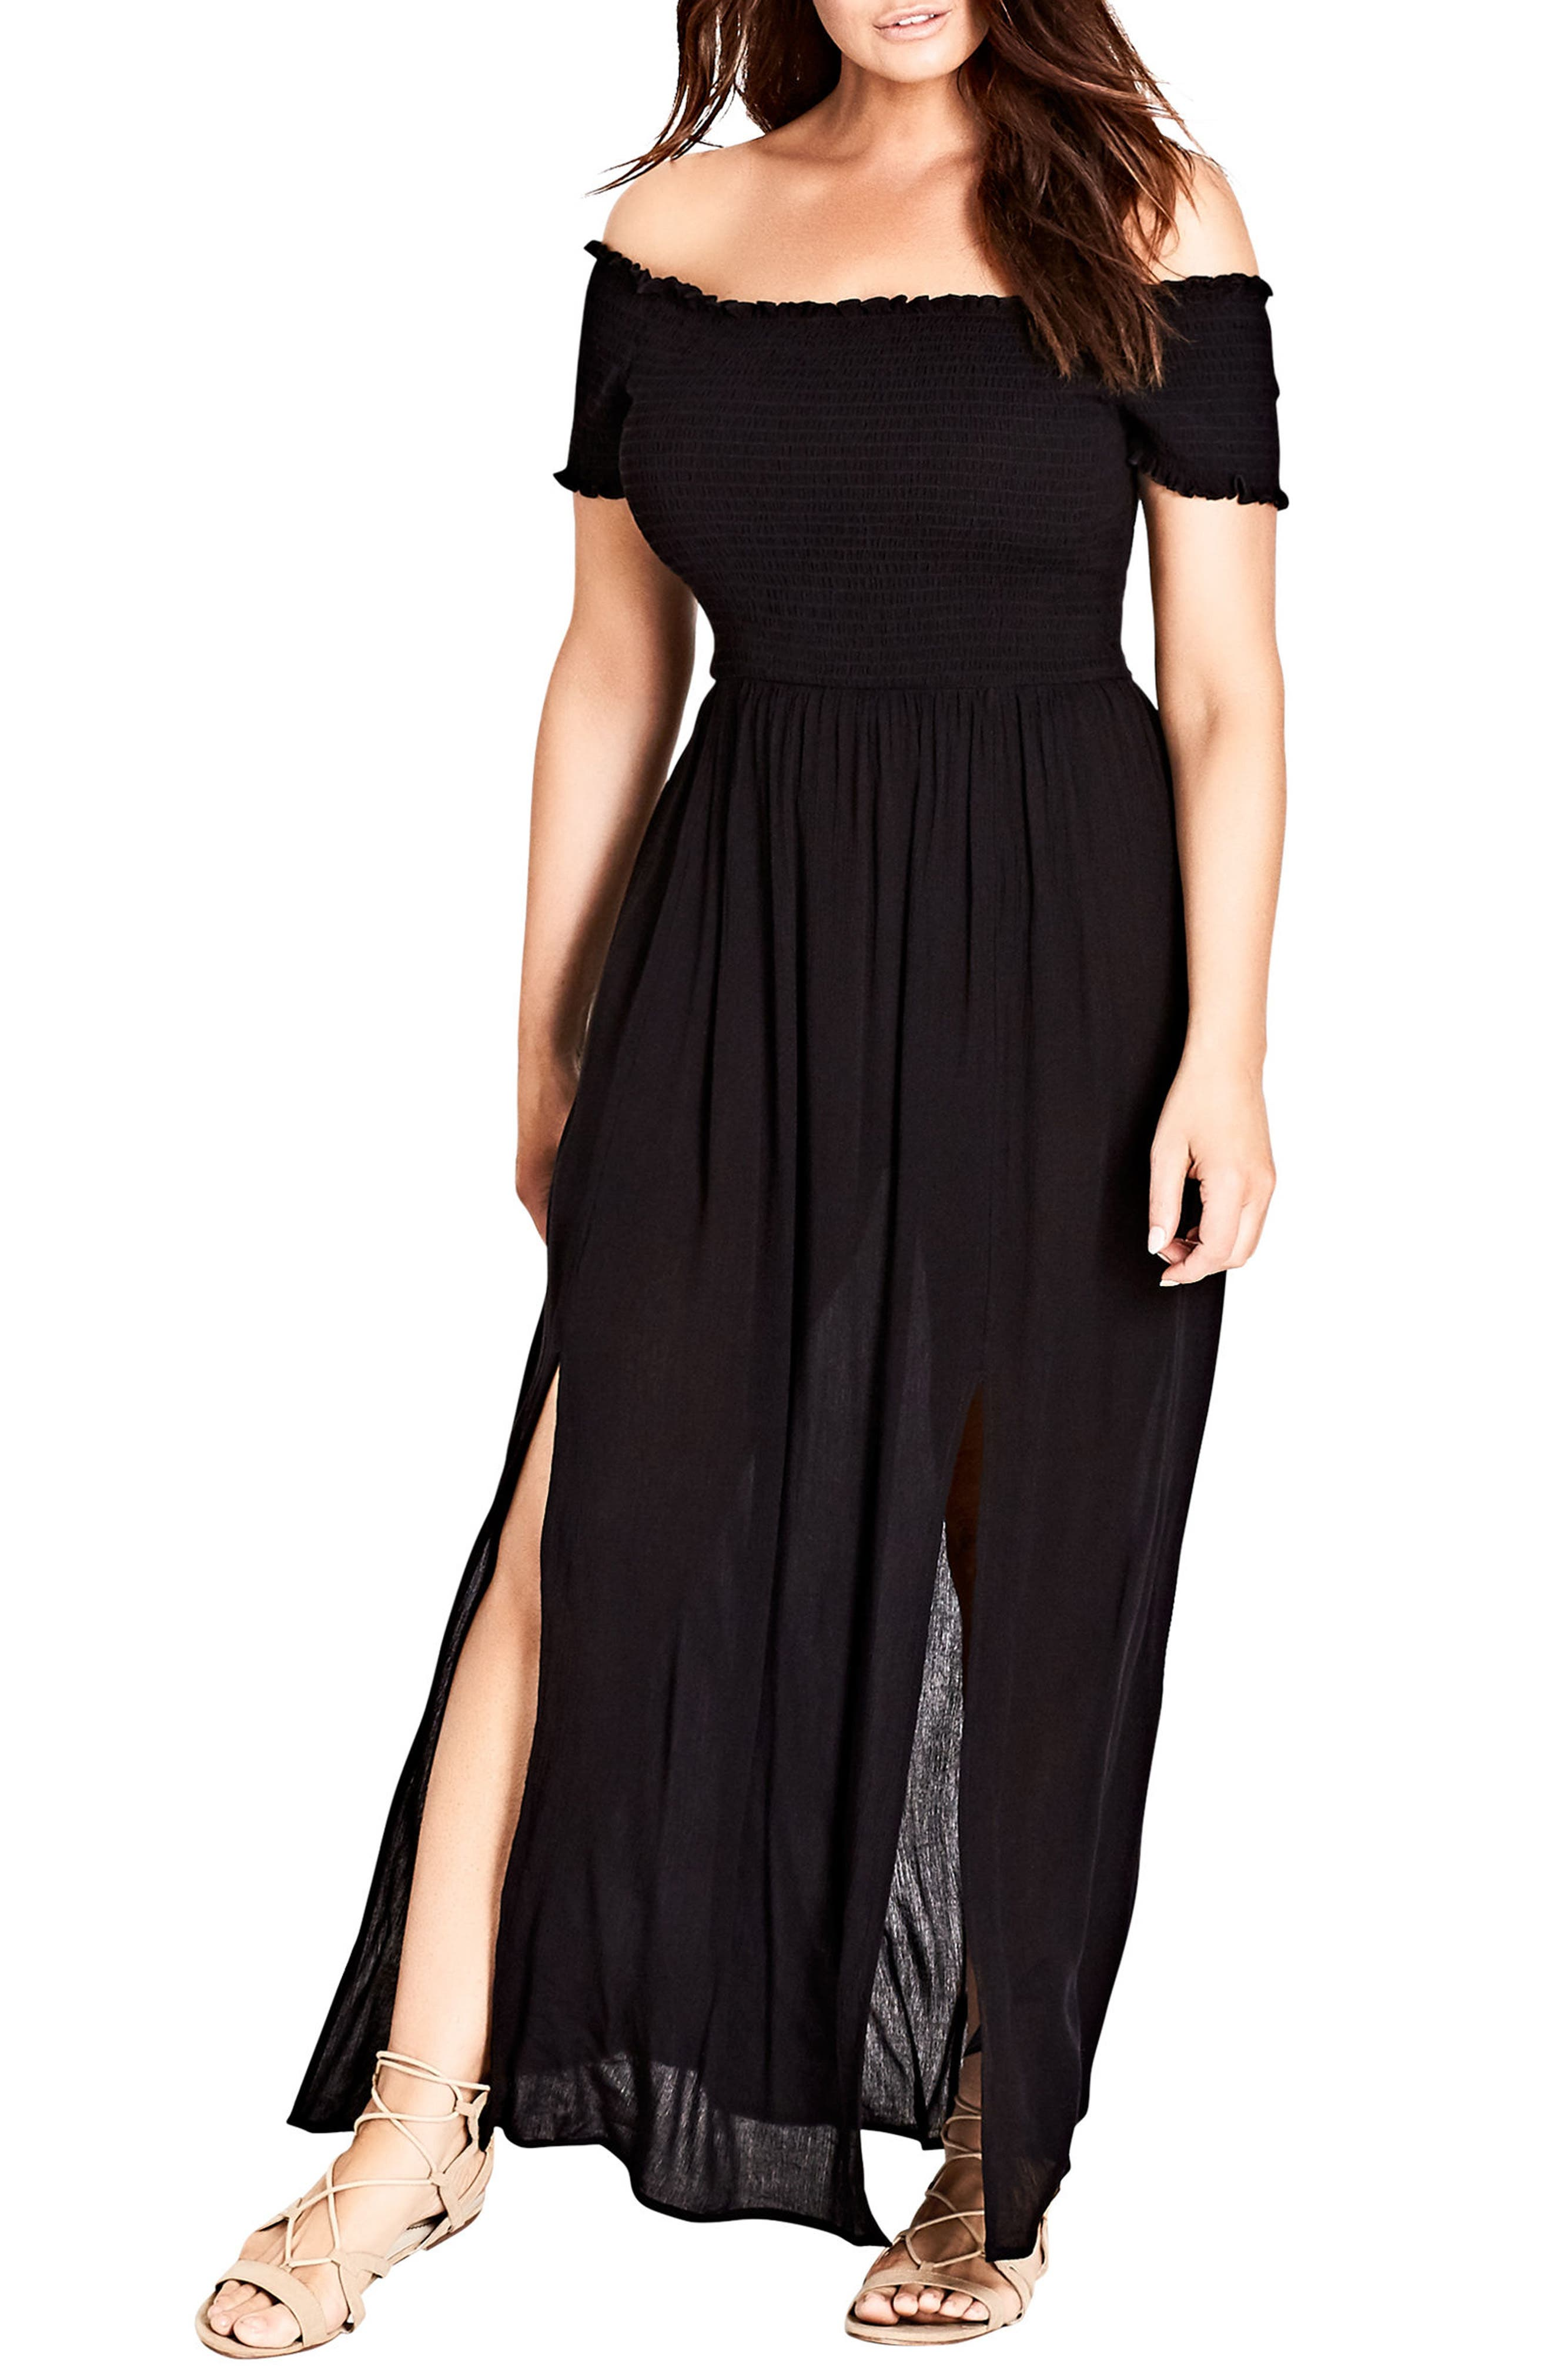 Smocked Off the Shoulder Maxi Dress,                         Main,                         color, Black